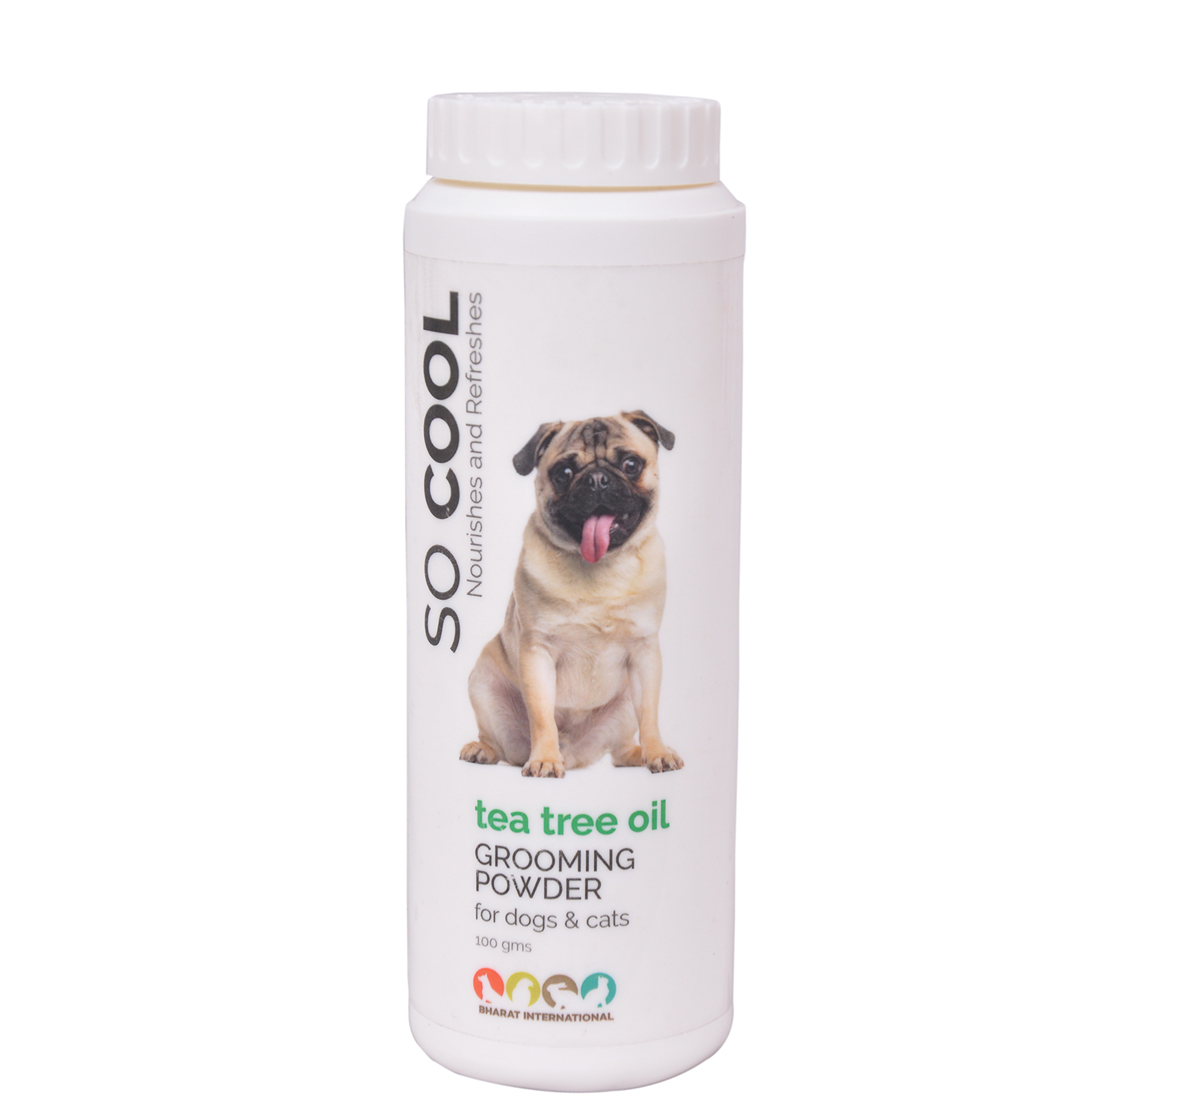 TeaTree Oil Grooming Powder For Dog - 100 gm